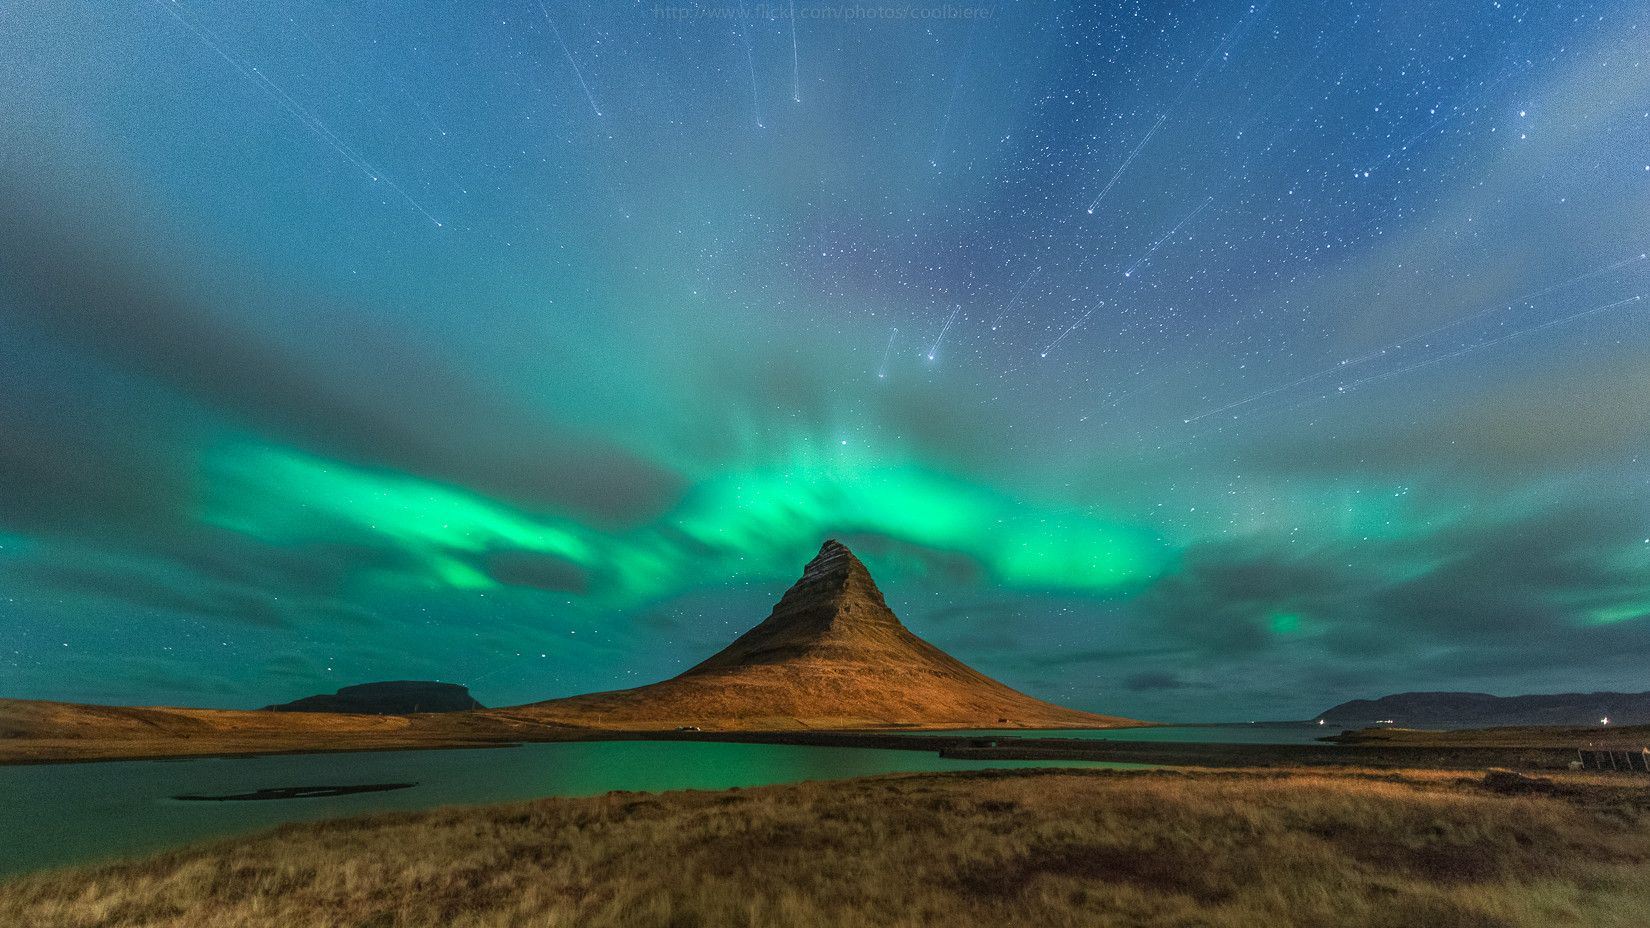 Starburst over Aurora Borealis in Iceland